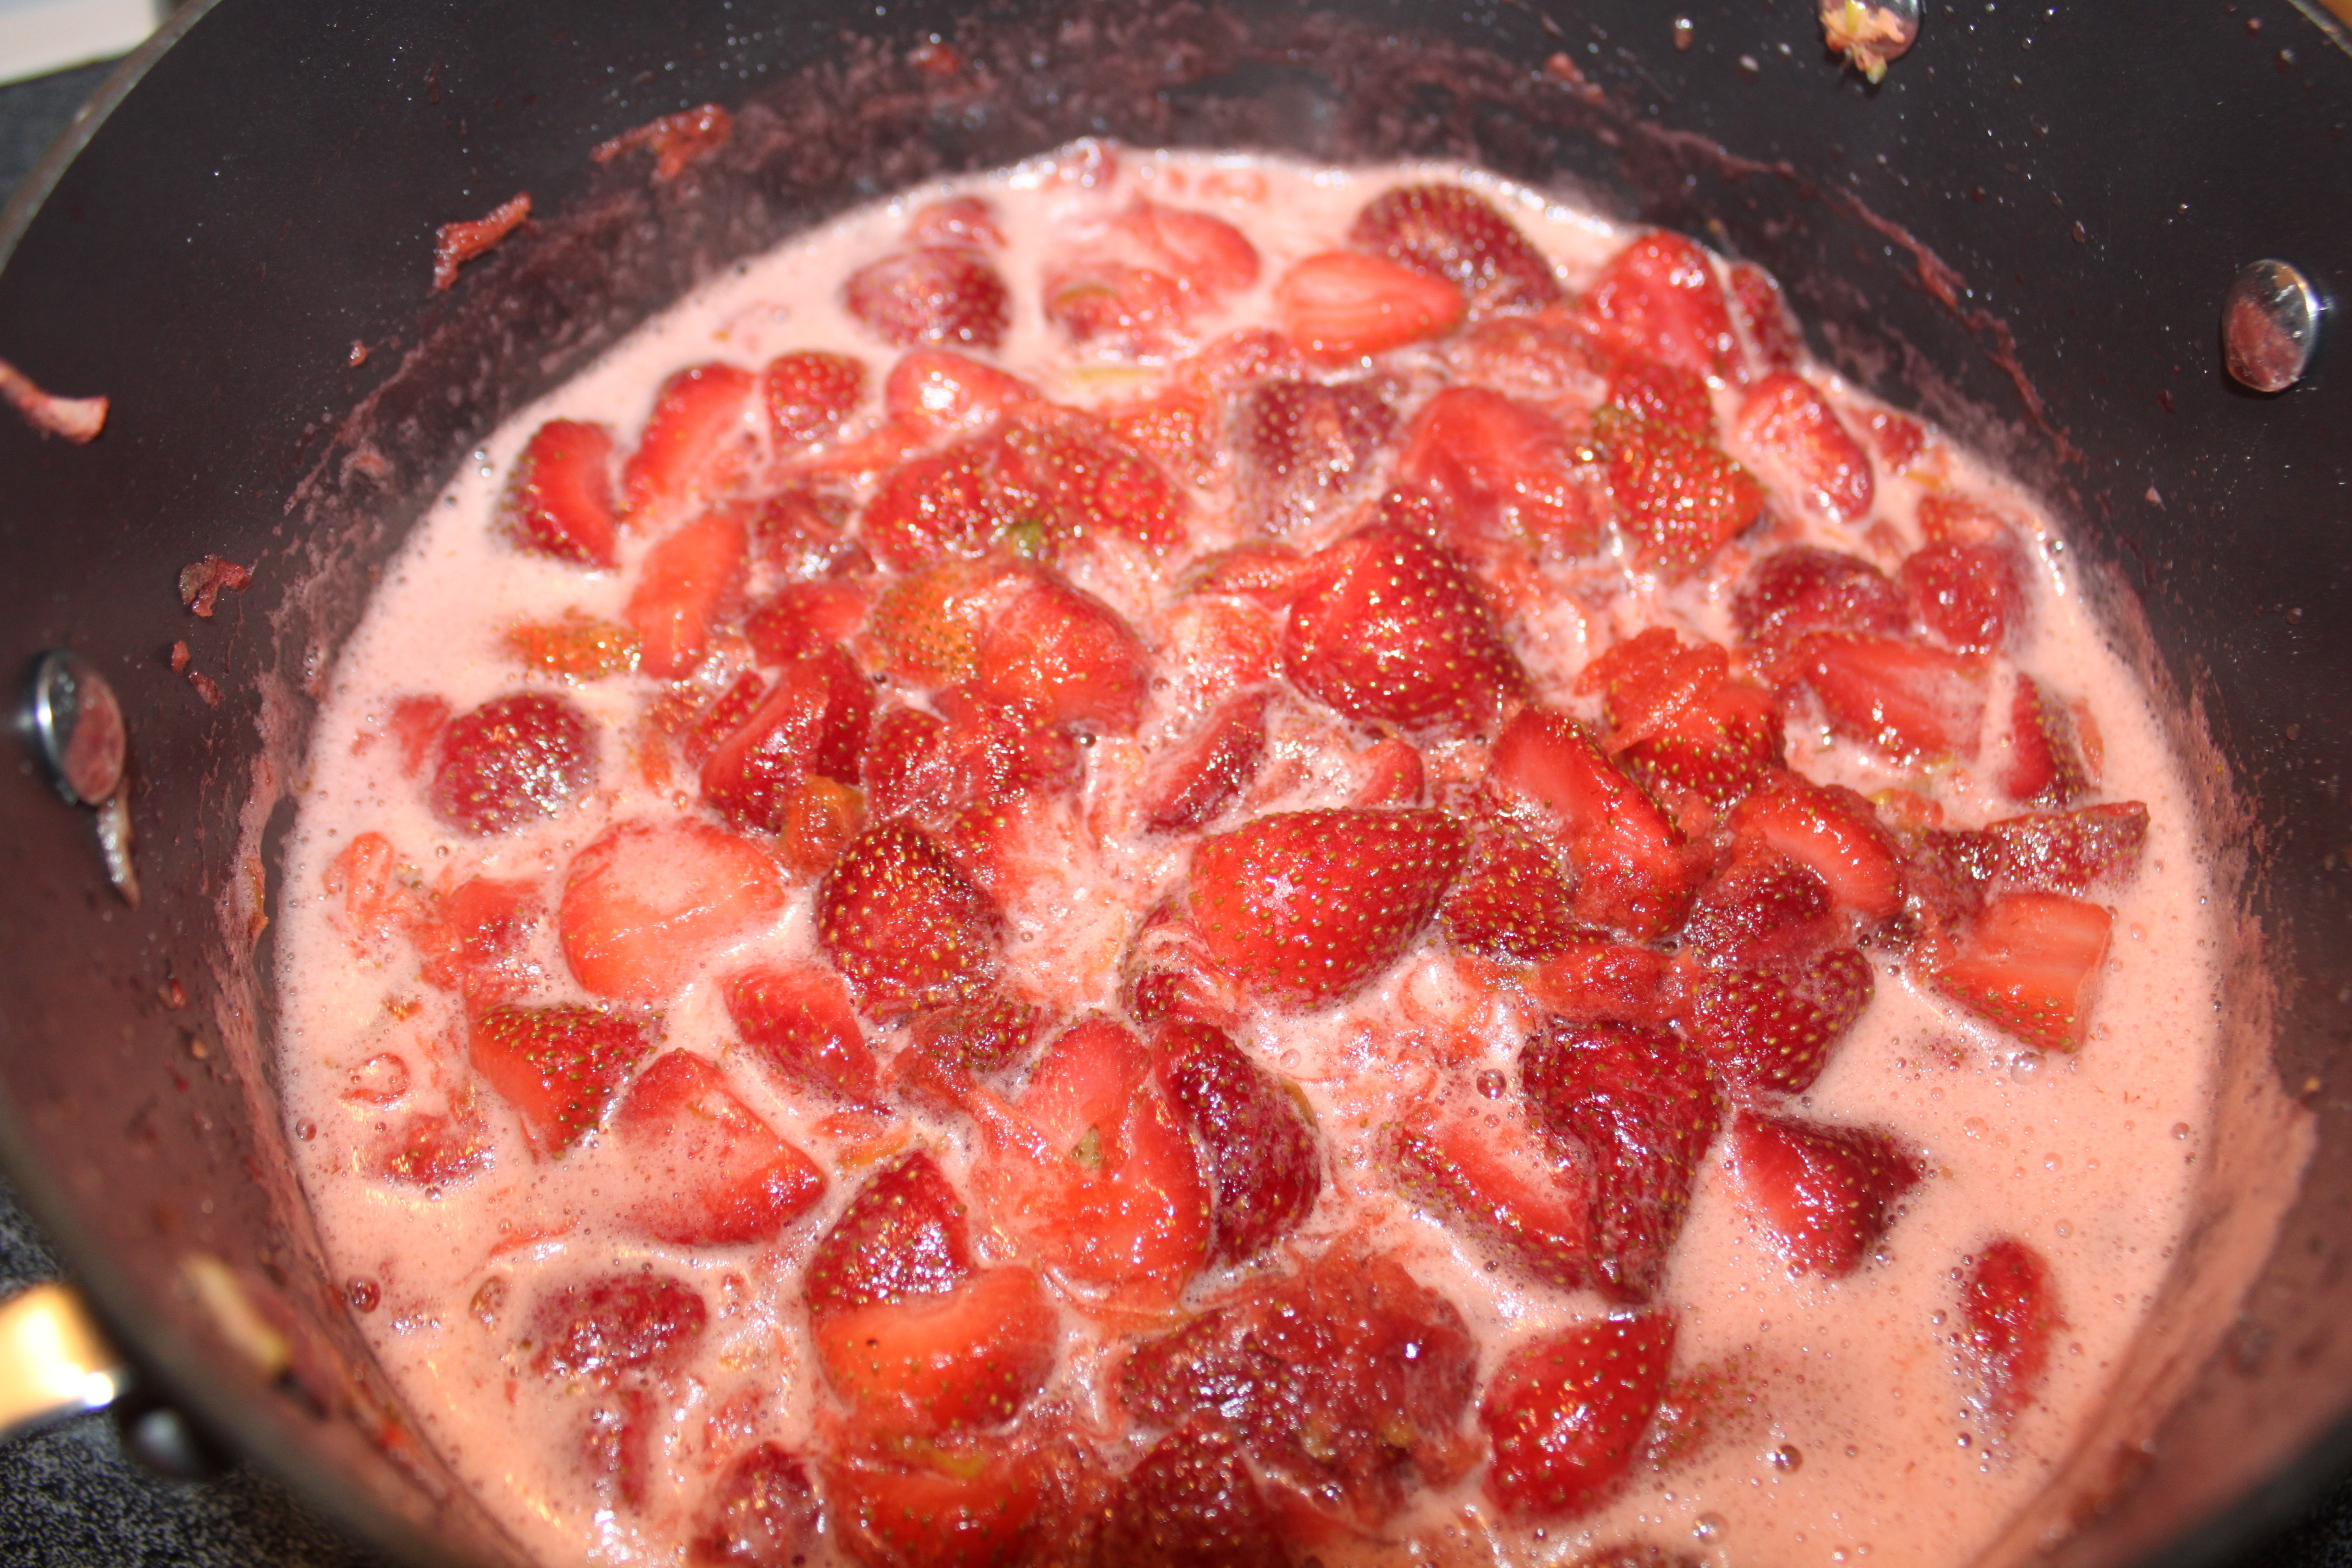 ... jam the perfect strawberry jam infused with strawberry jam no 122